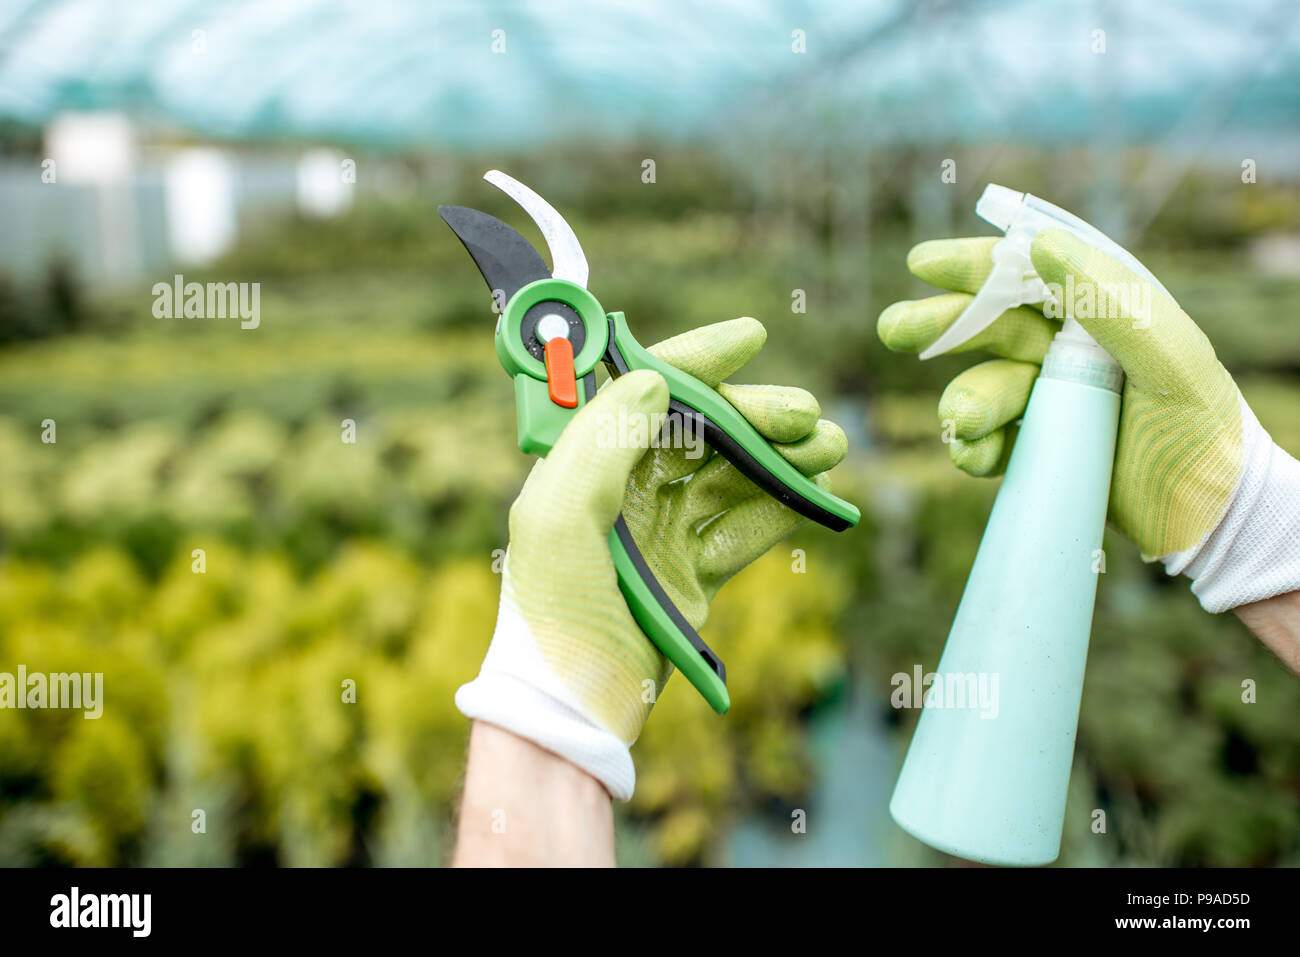 Tools for gardening - Stock Image